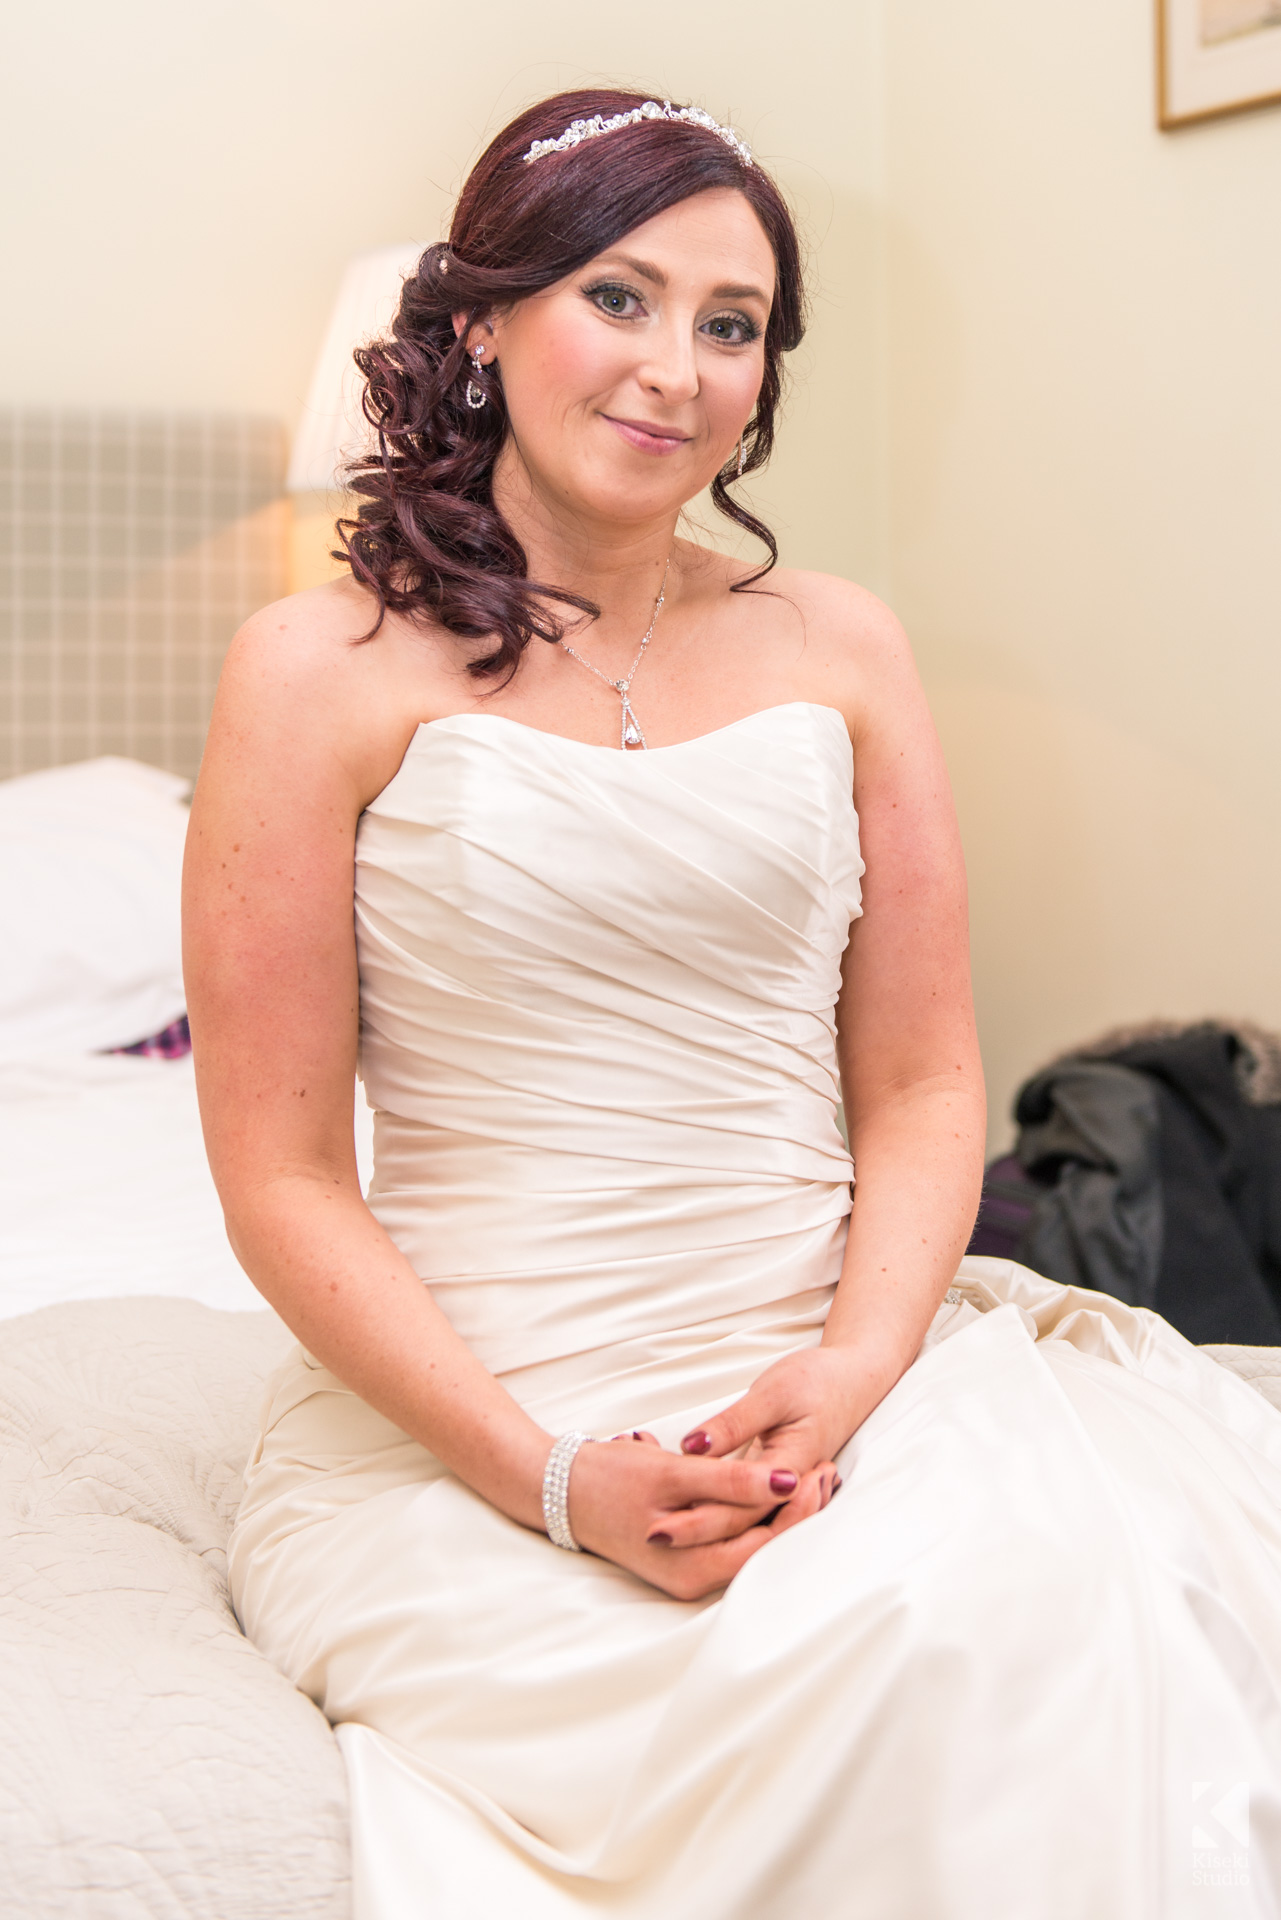 NYE Wedding at Ripley Castle - Bride in her lovely white dress